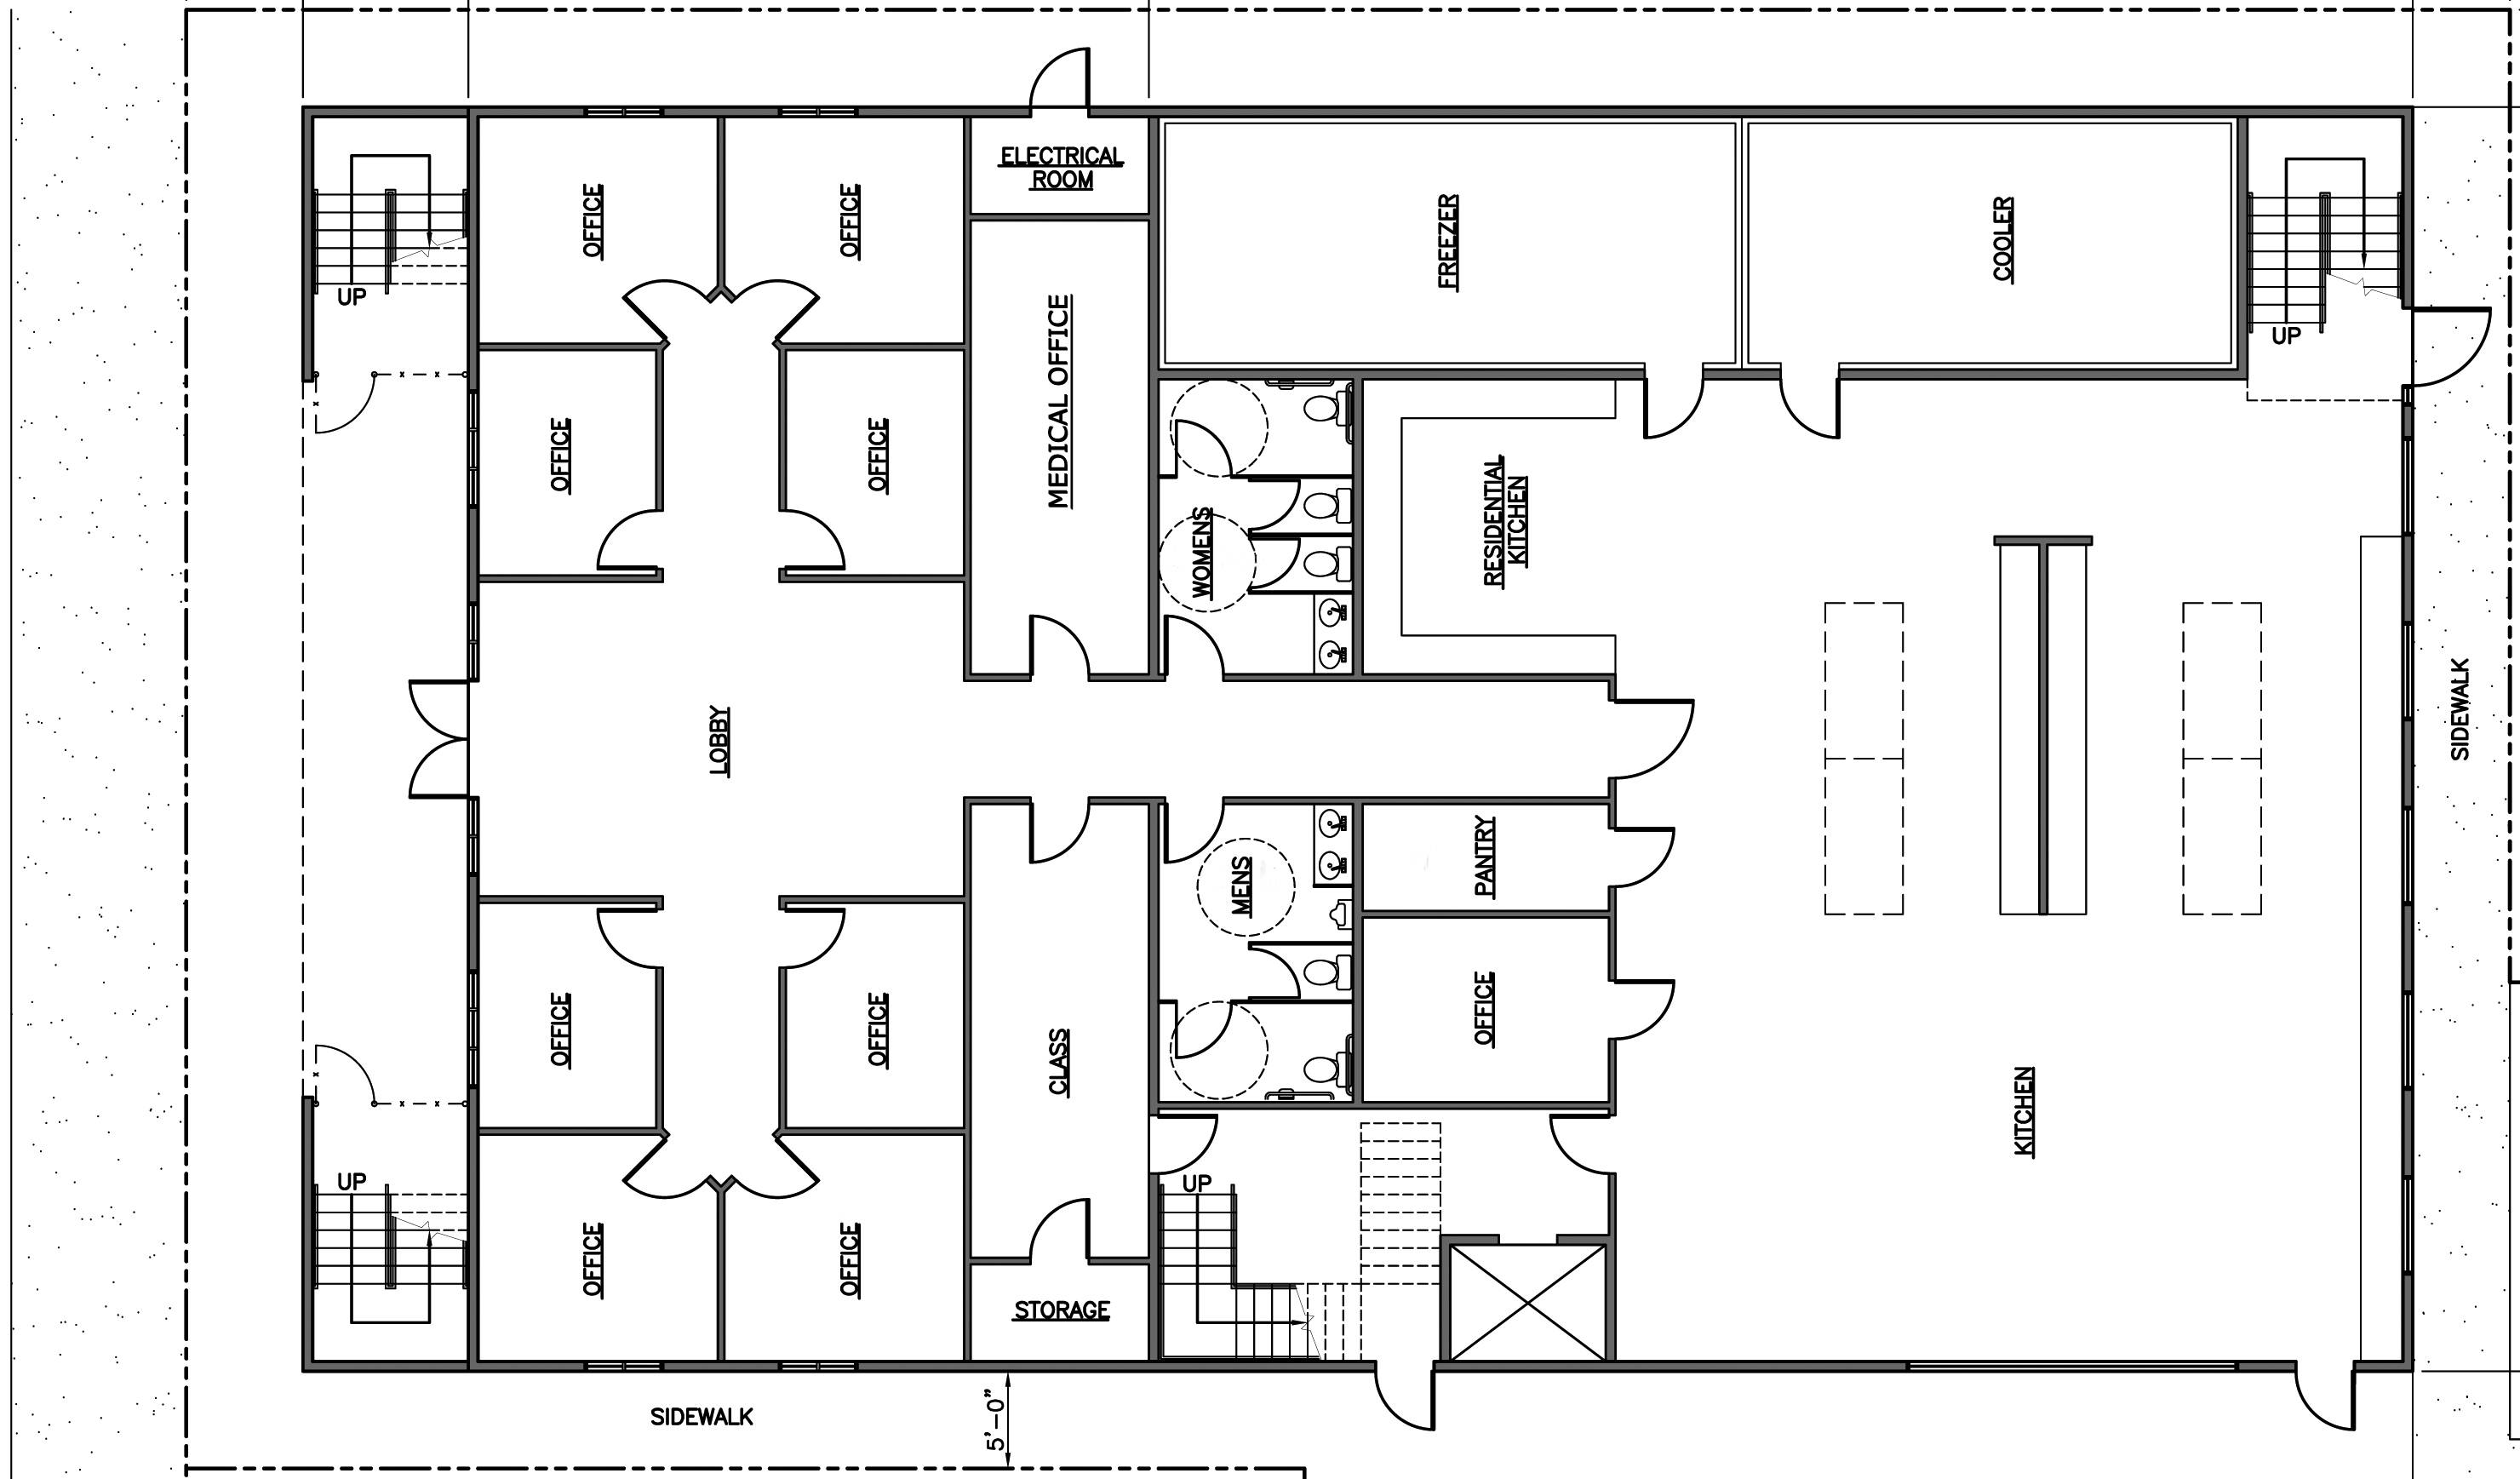 Architect house plans seekan architects house plans for Home architecture floor plans